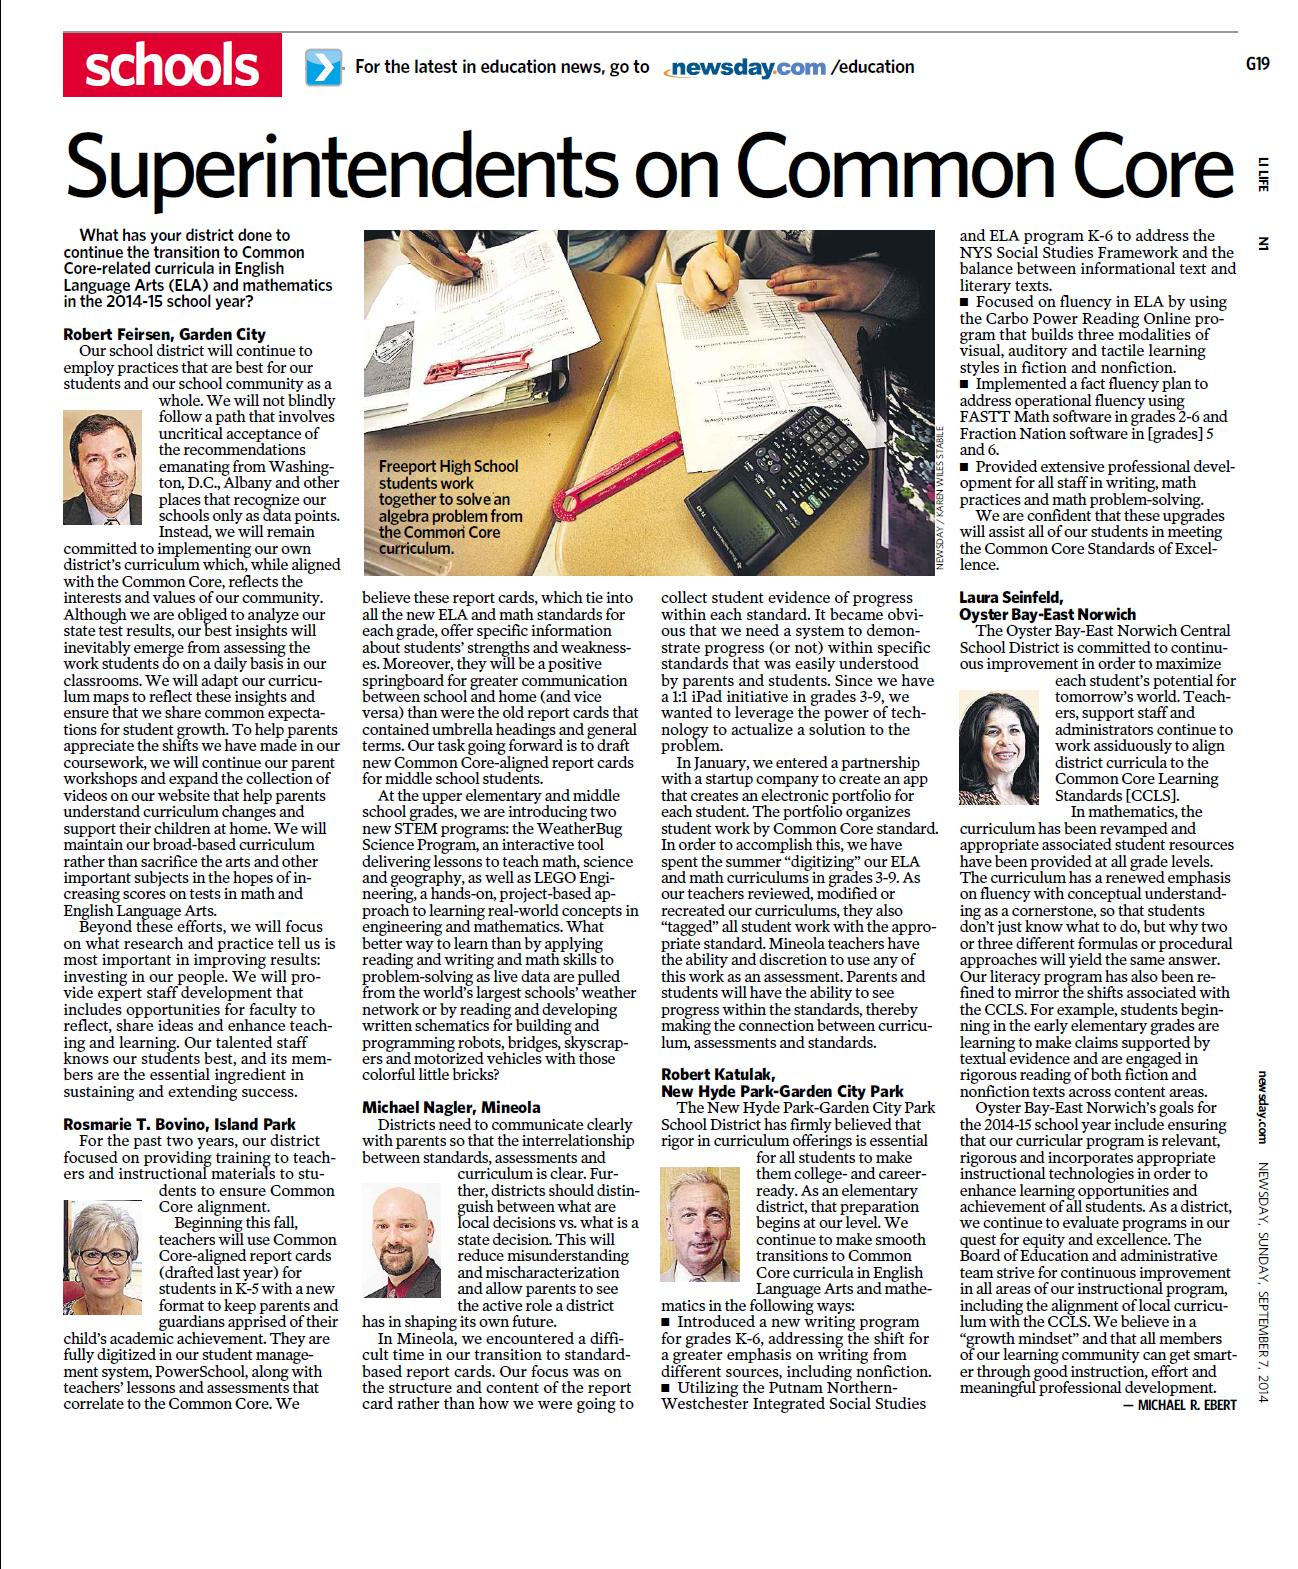 Dr. Feirsen on Common Core